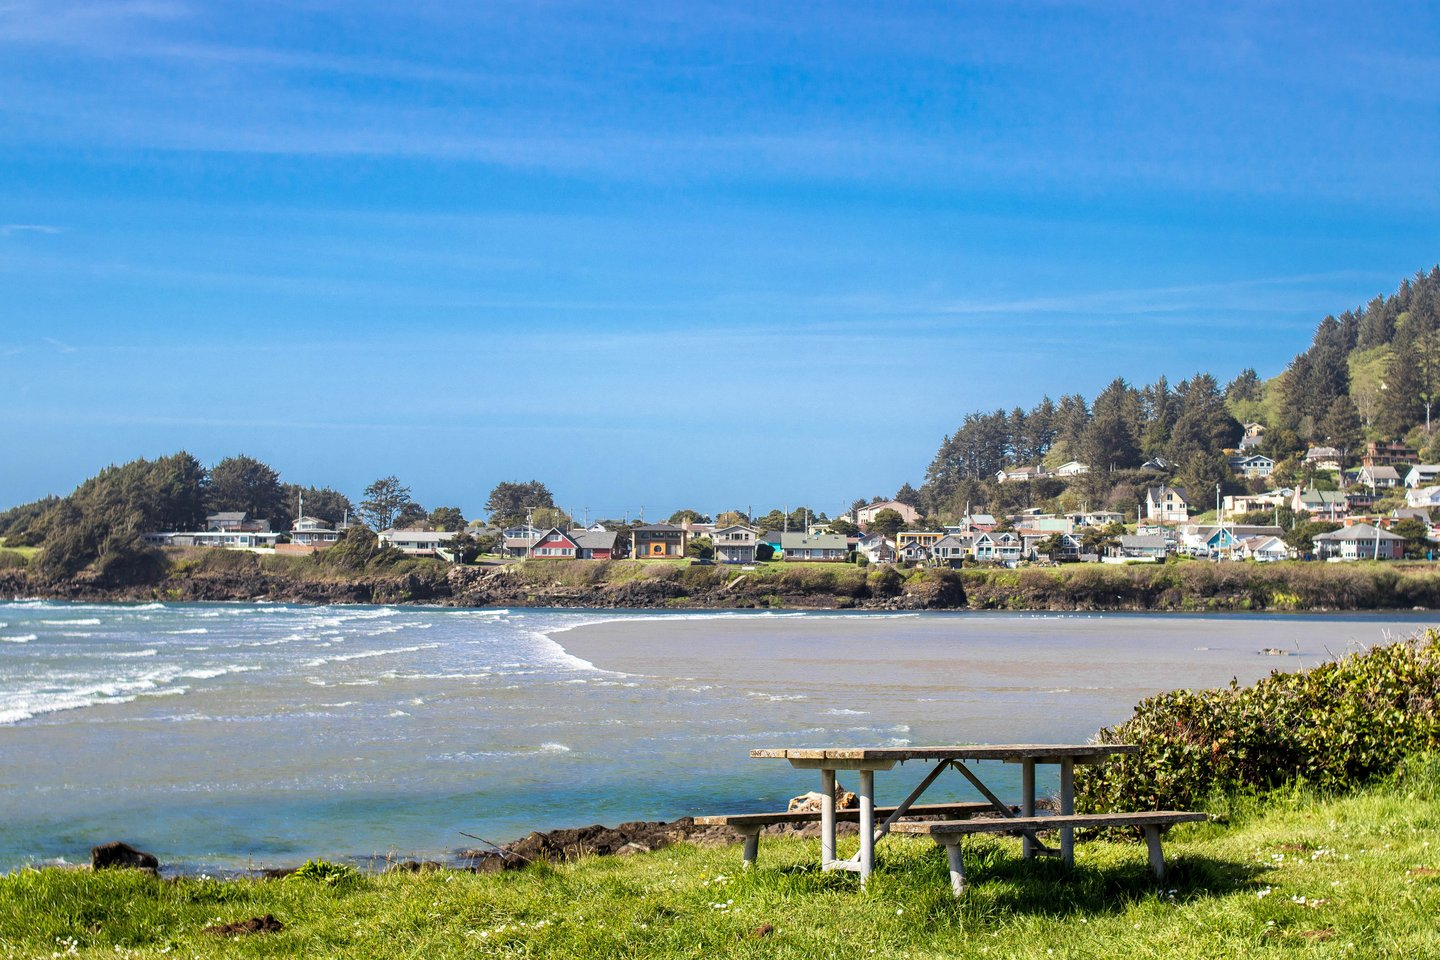 Take some time to explore Yachats, the gem of the Oregon coast!